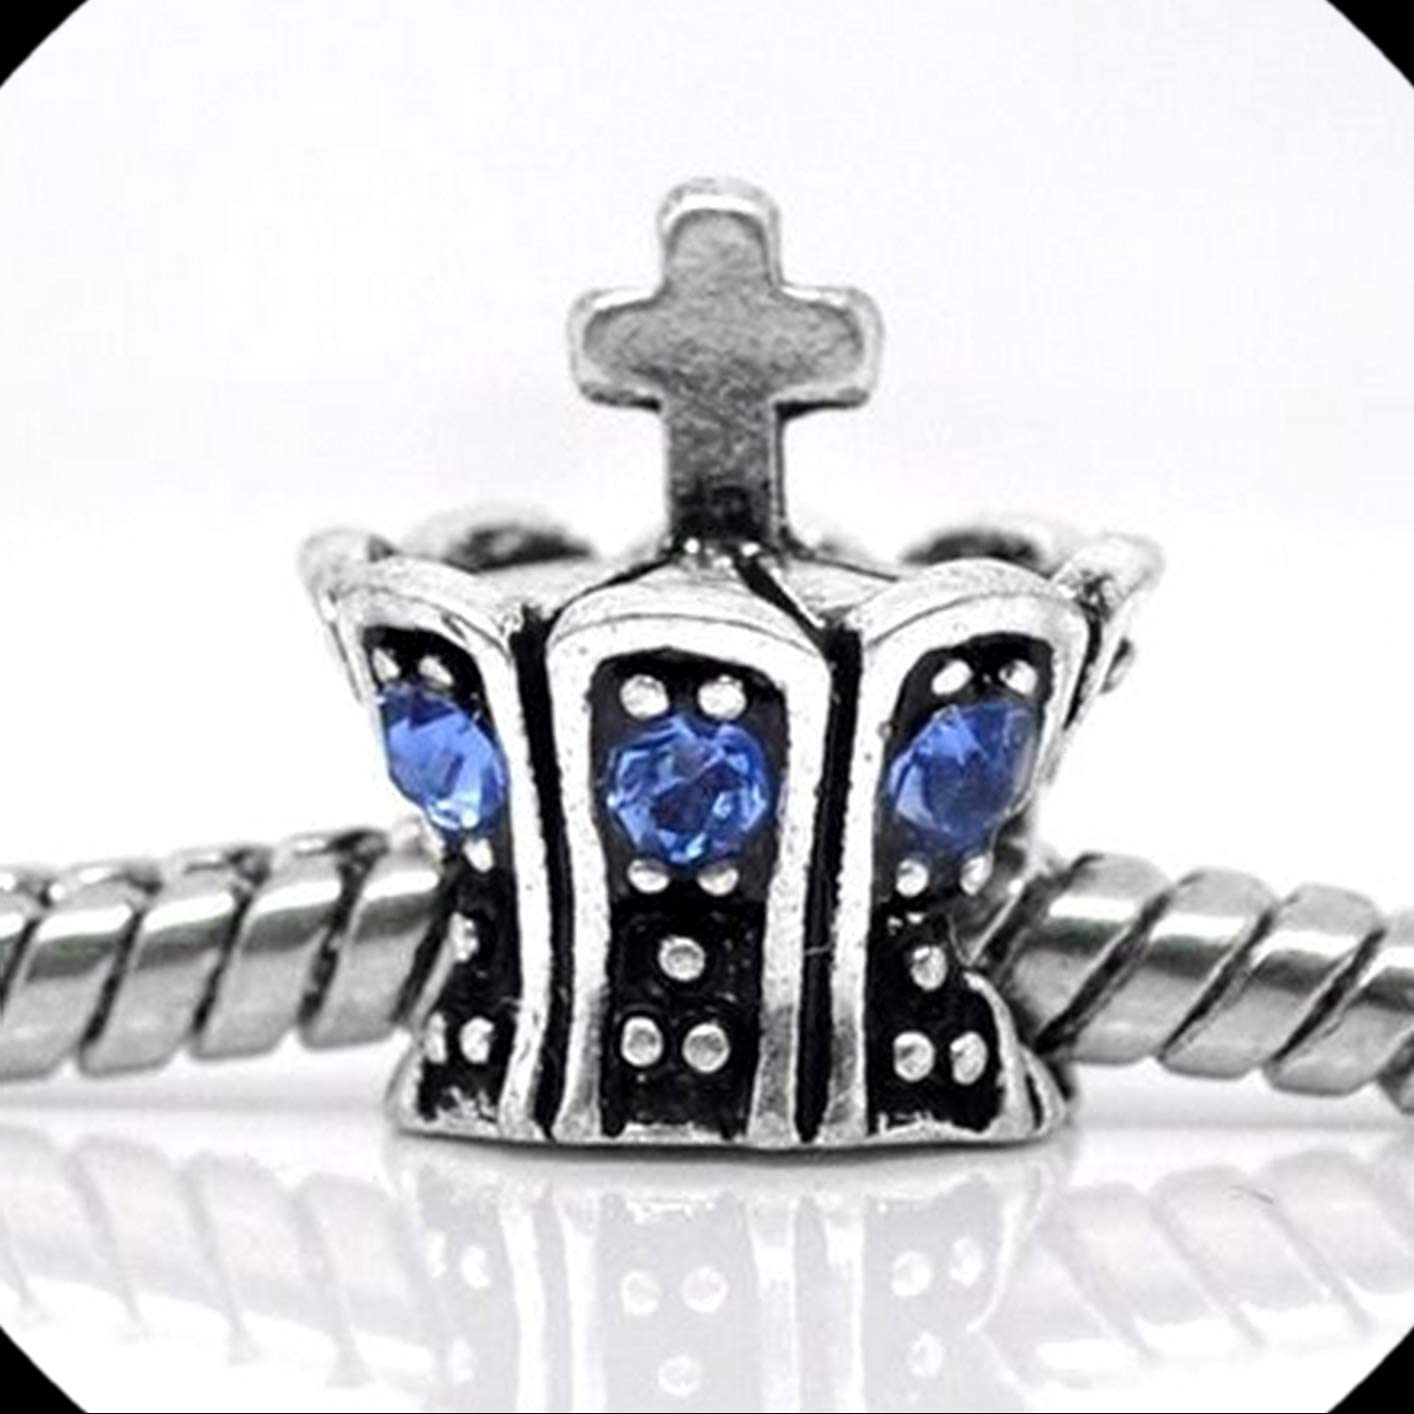 Blue Rhinestone Crown with Cross Antiqued Silver Large 4.8mm Hole Charm Bead 1pc Adorable Charms and More for Your own Designs by CharmingStuffS